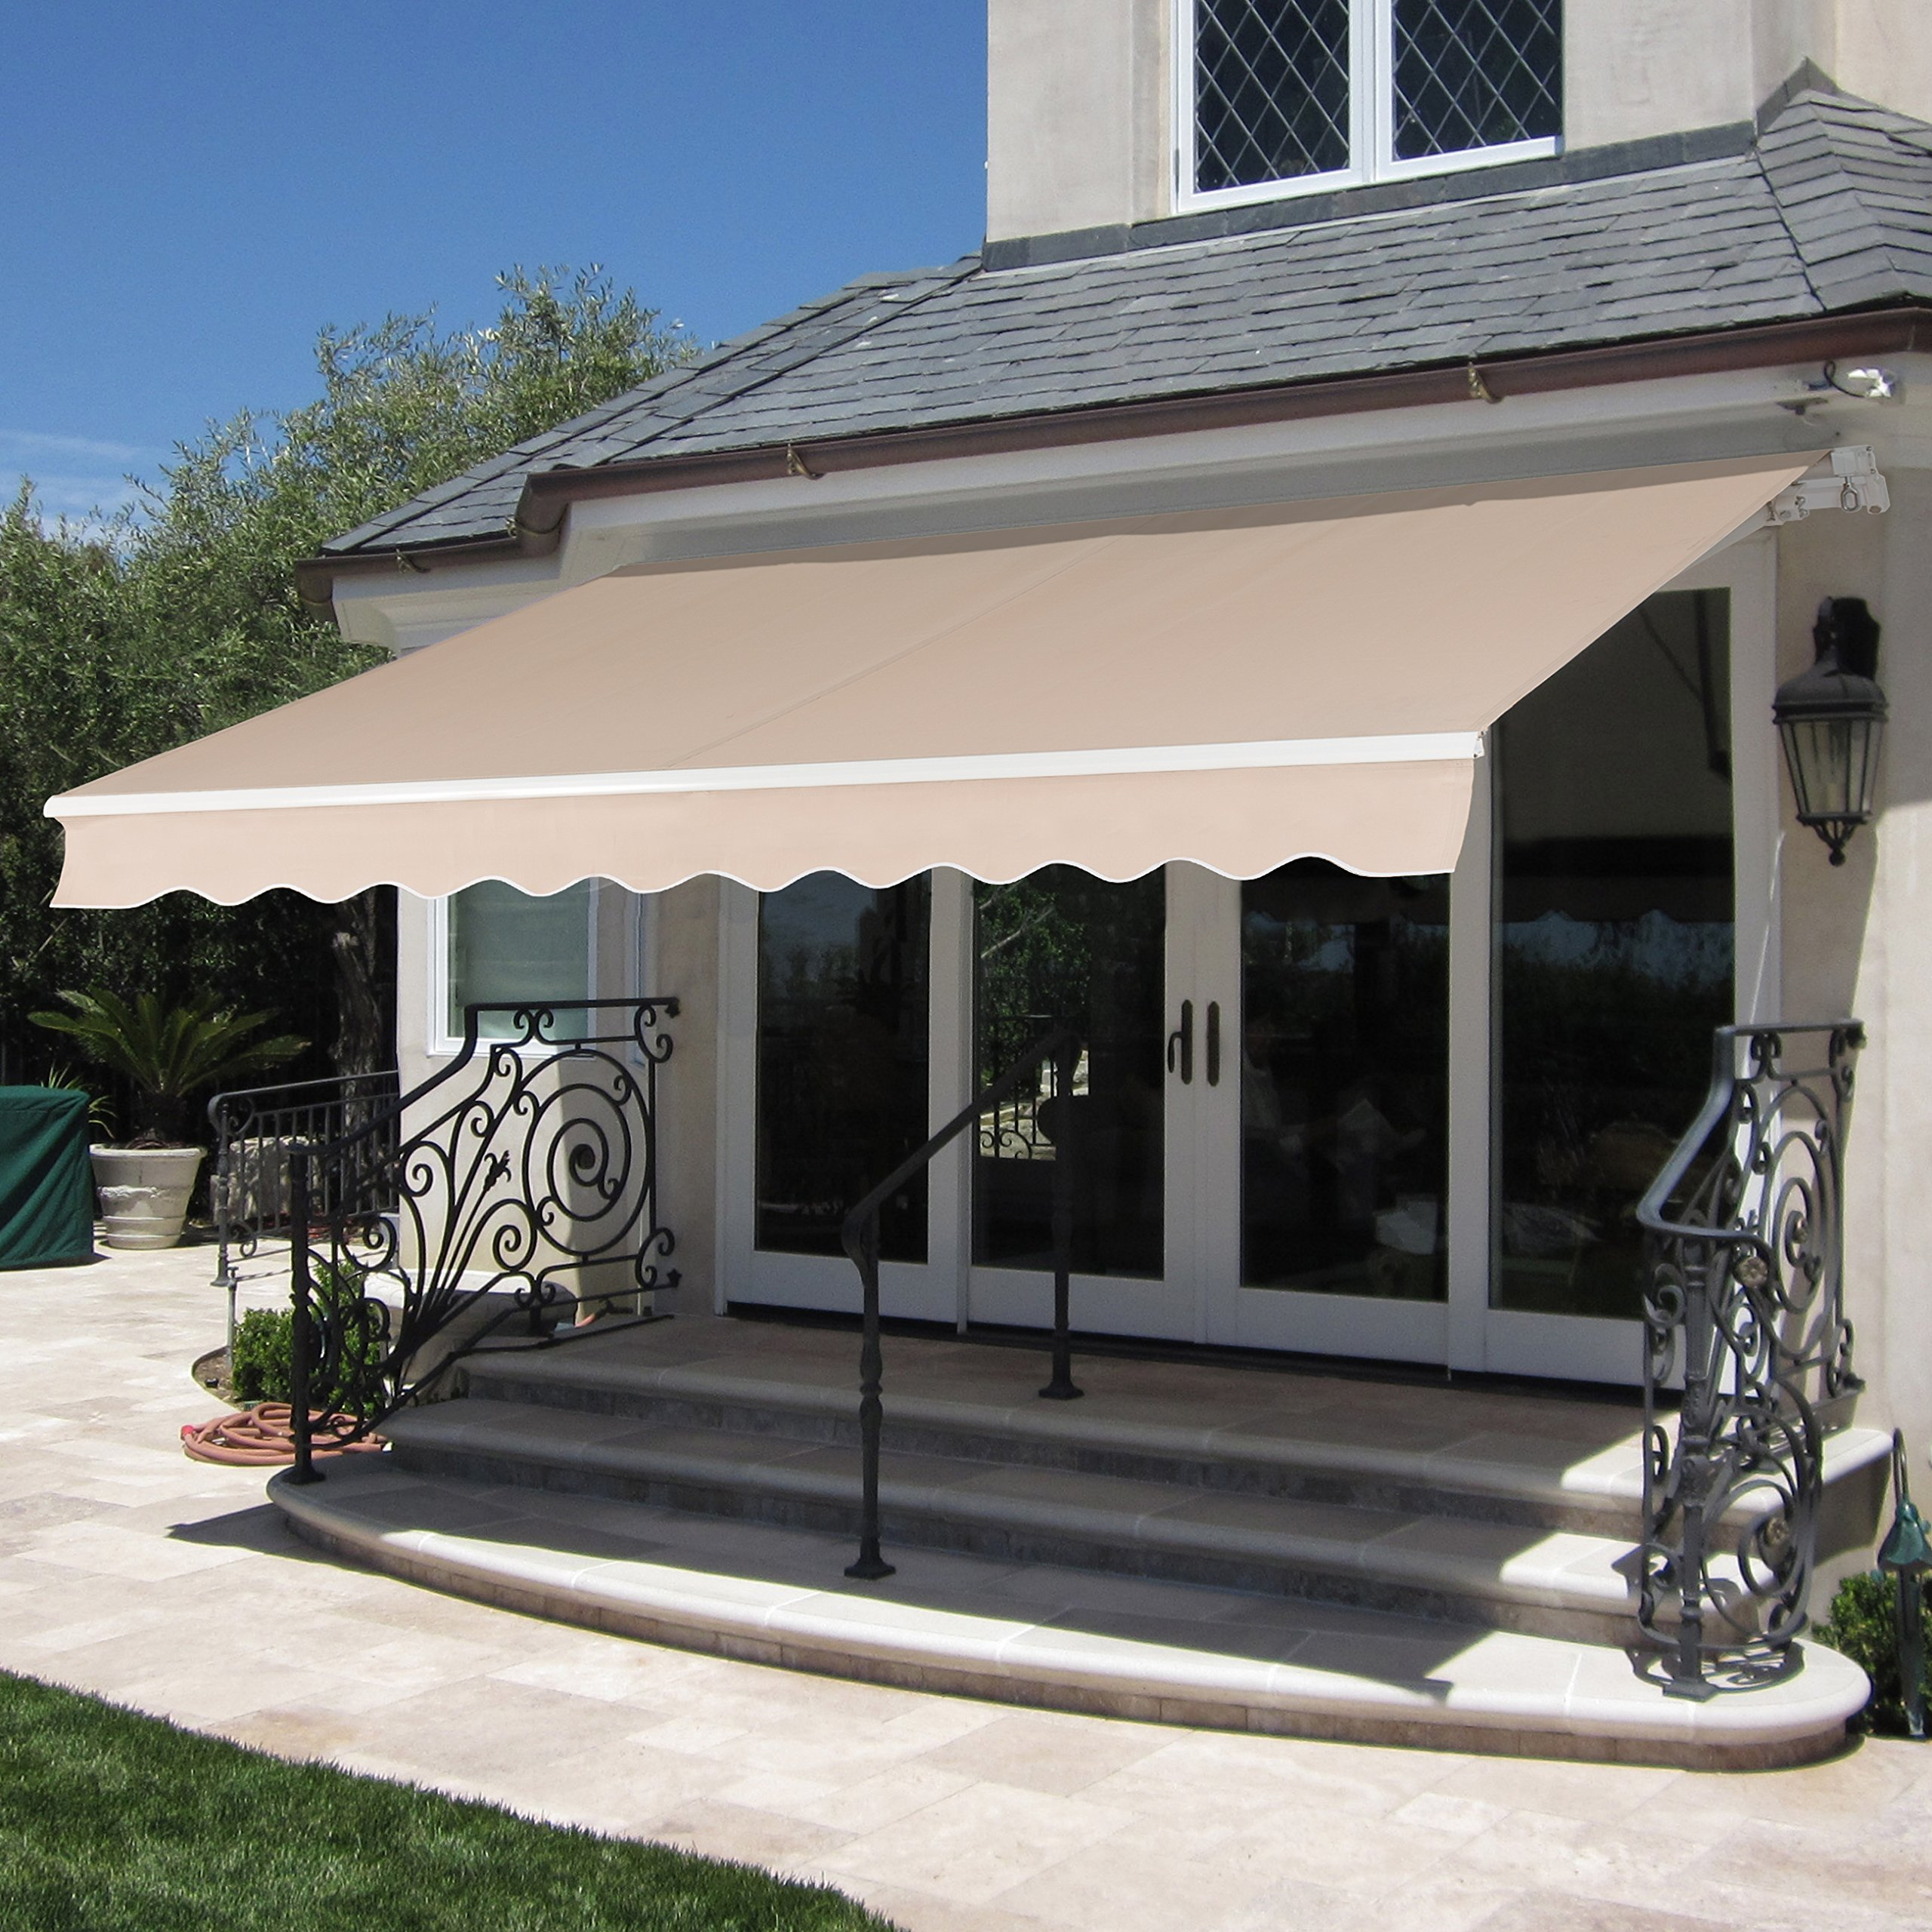 Best Choice Products 98x80in Retractable Patio Sun Shade Awning Cover w/UV- & Water-Resistant Fabric, Aluminum Frame, Crank Handle by Best Choice Products